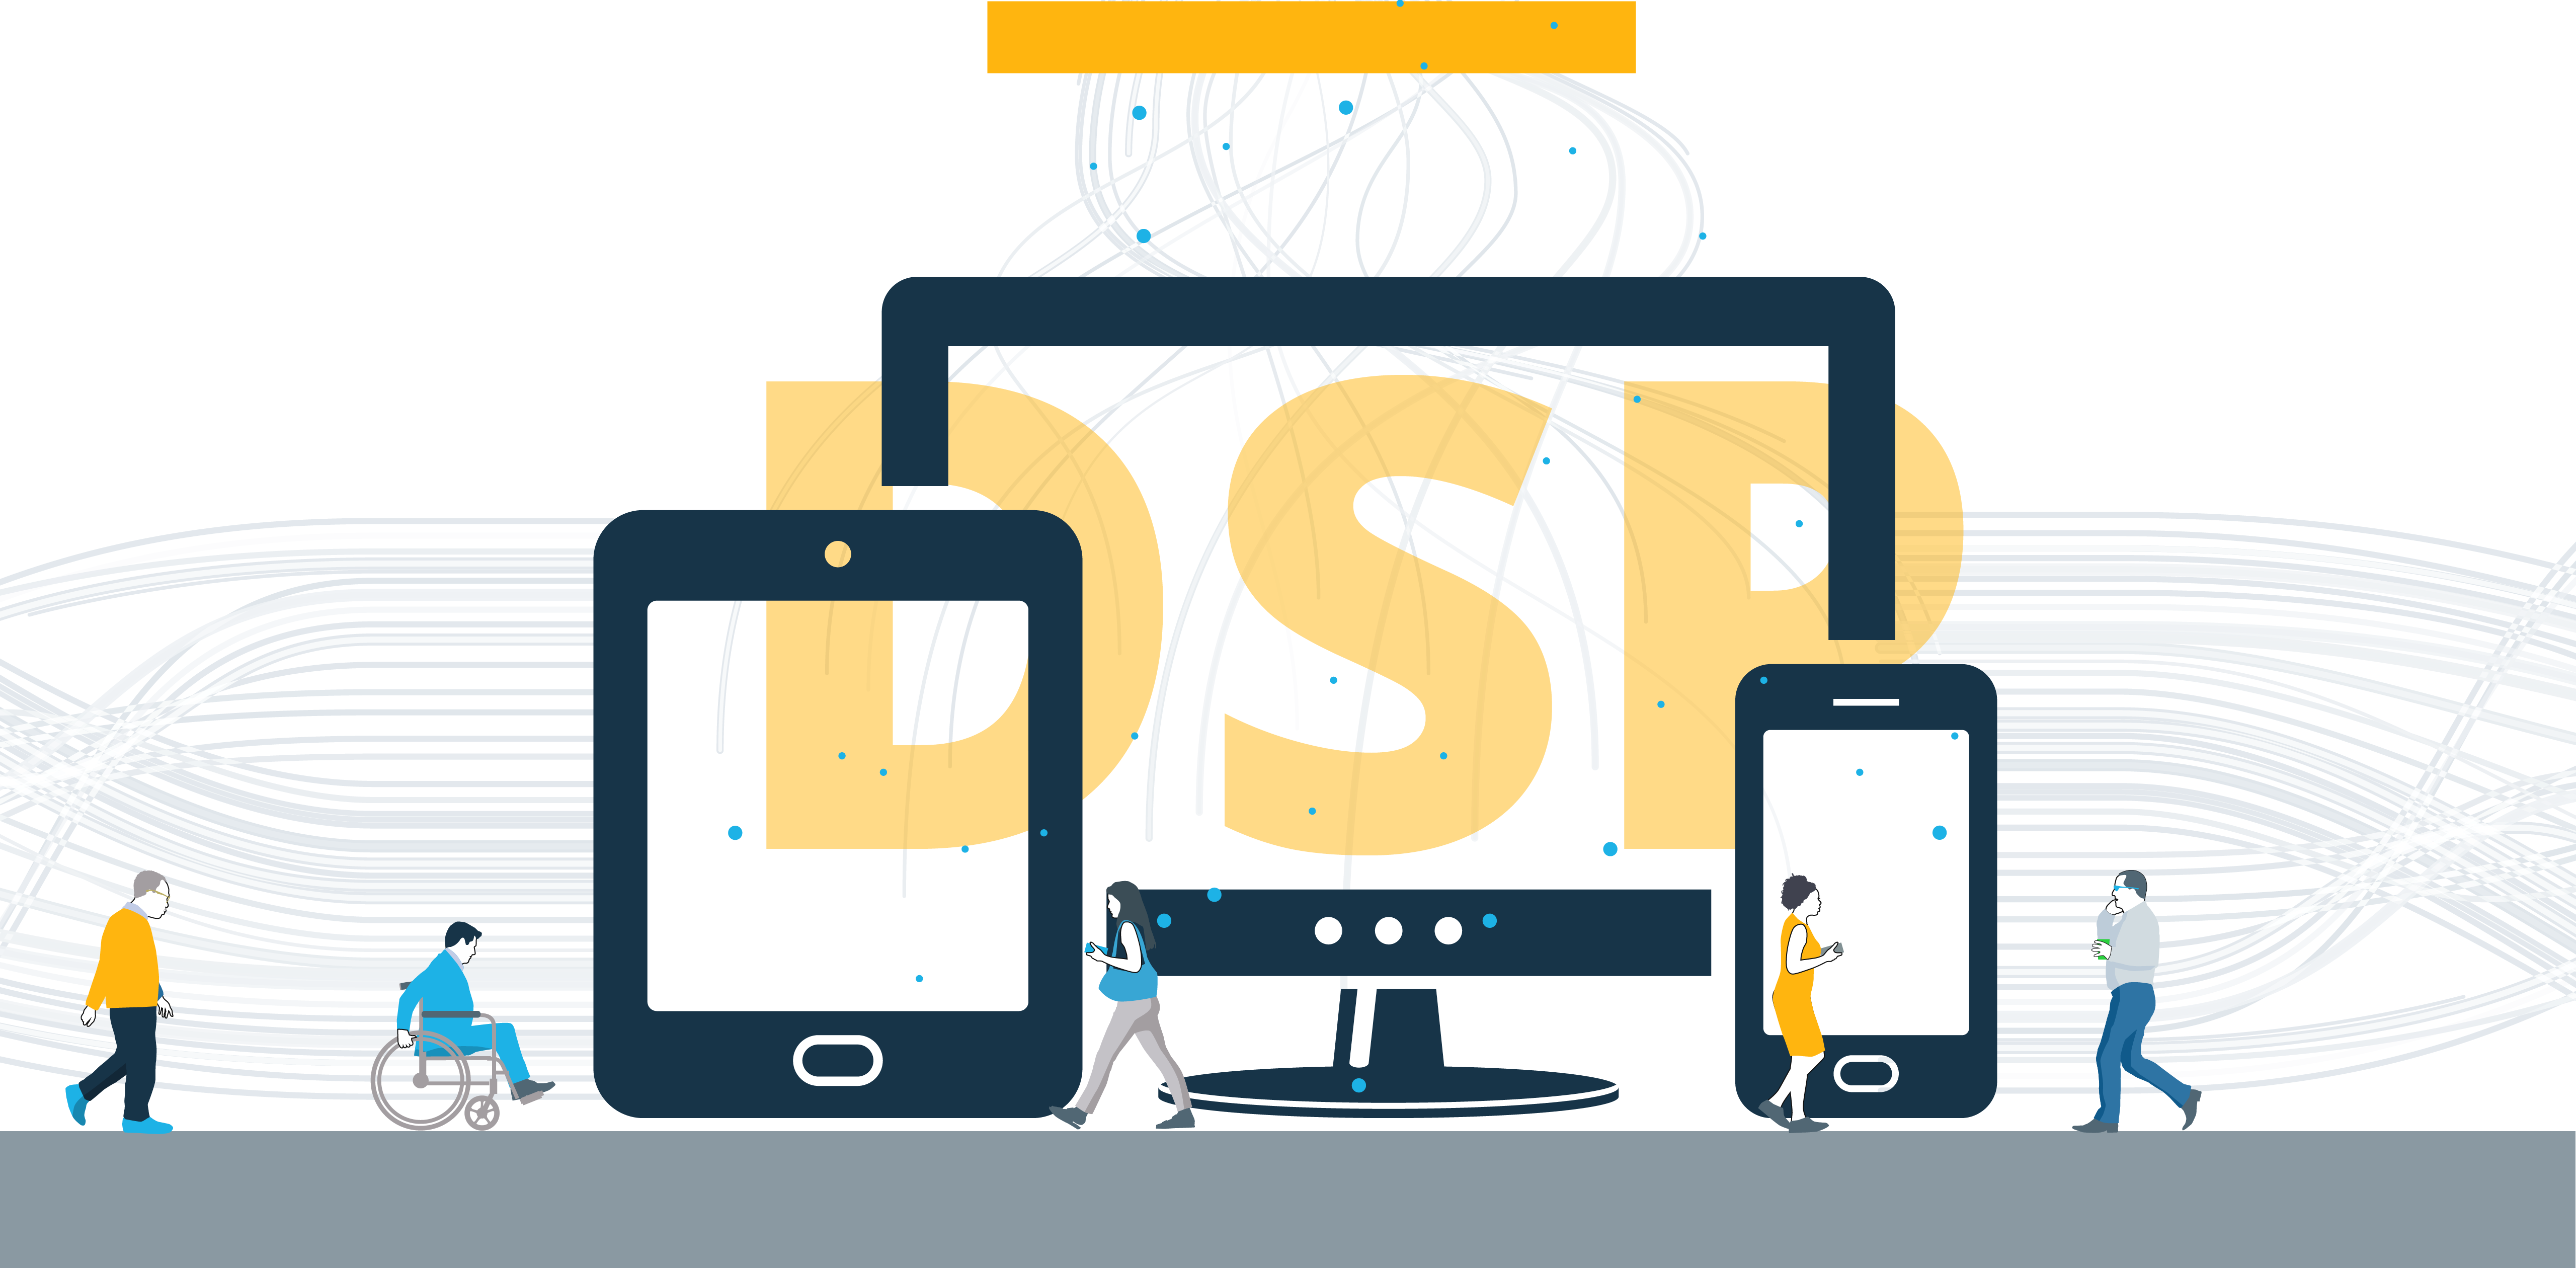 """Image of people moving around a tablet, monitor, and smartphone with """"DSP"""" on image"""